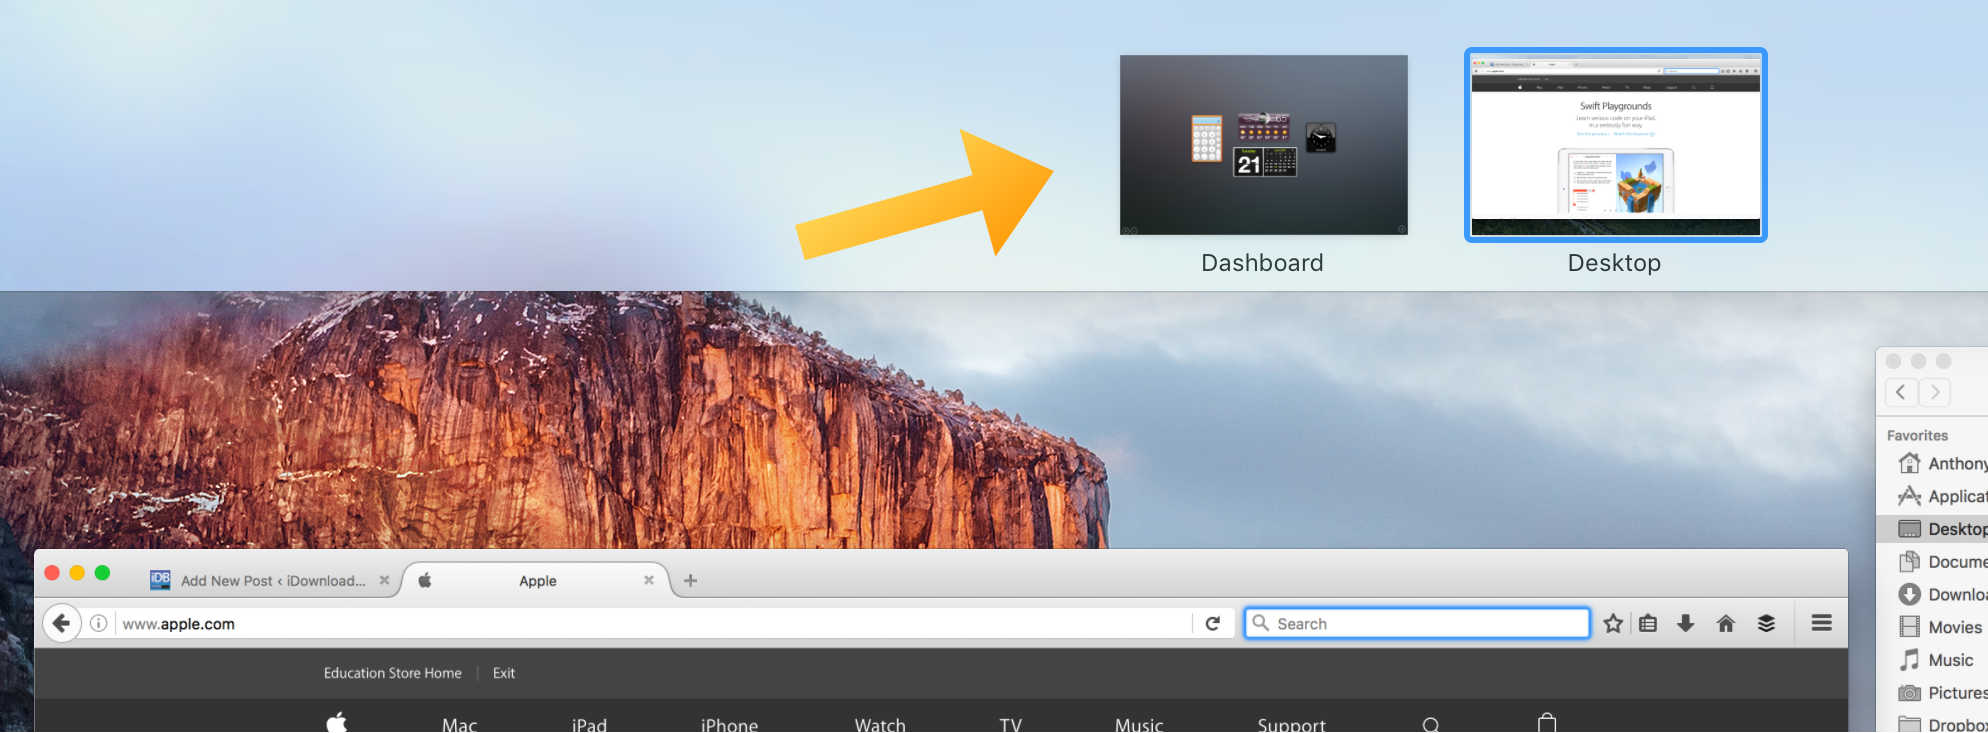 OS X Dashboard in Spaces